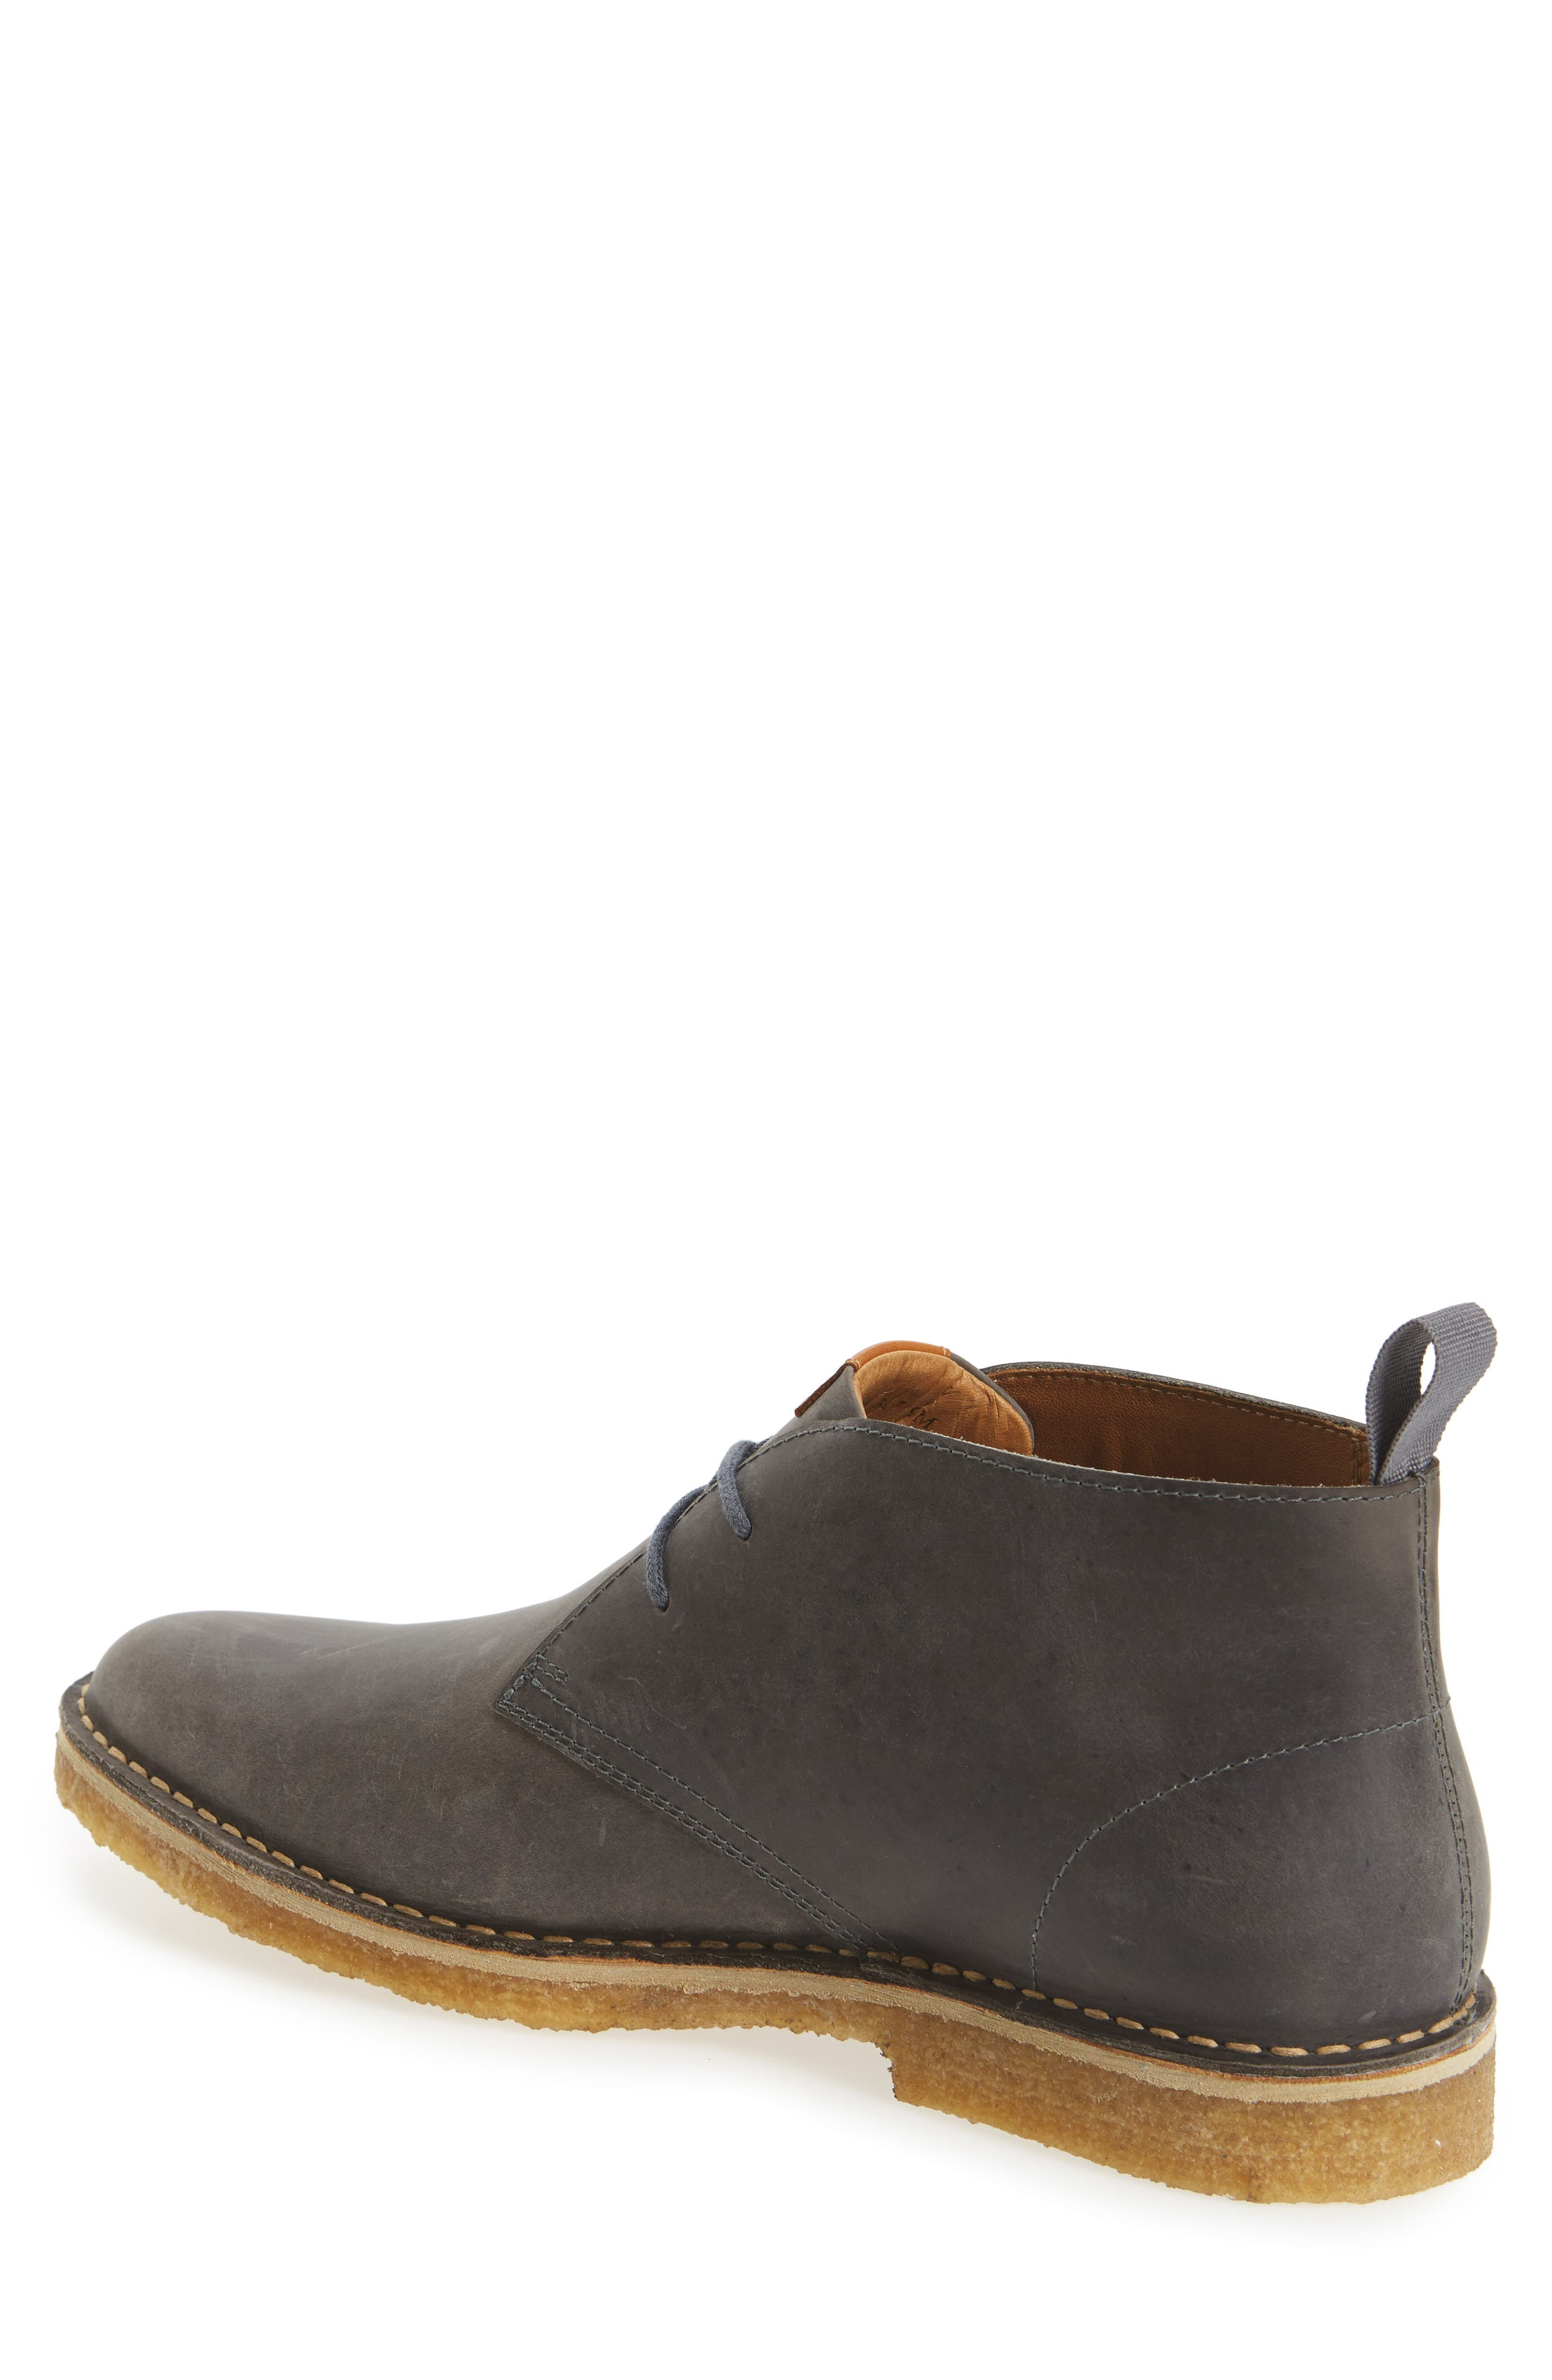 Westport Chukka Boot,                             Alternate thumbnail 2, color,                             020